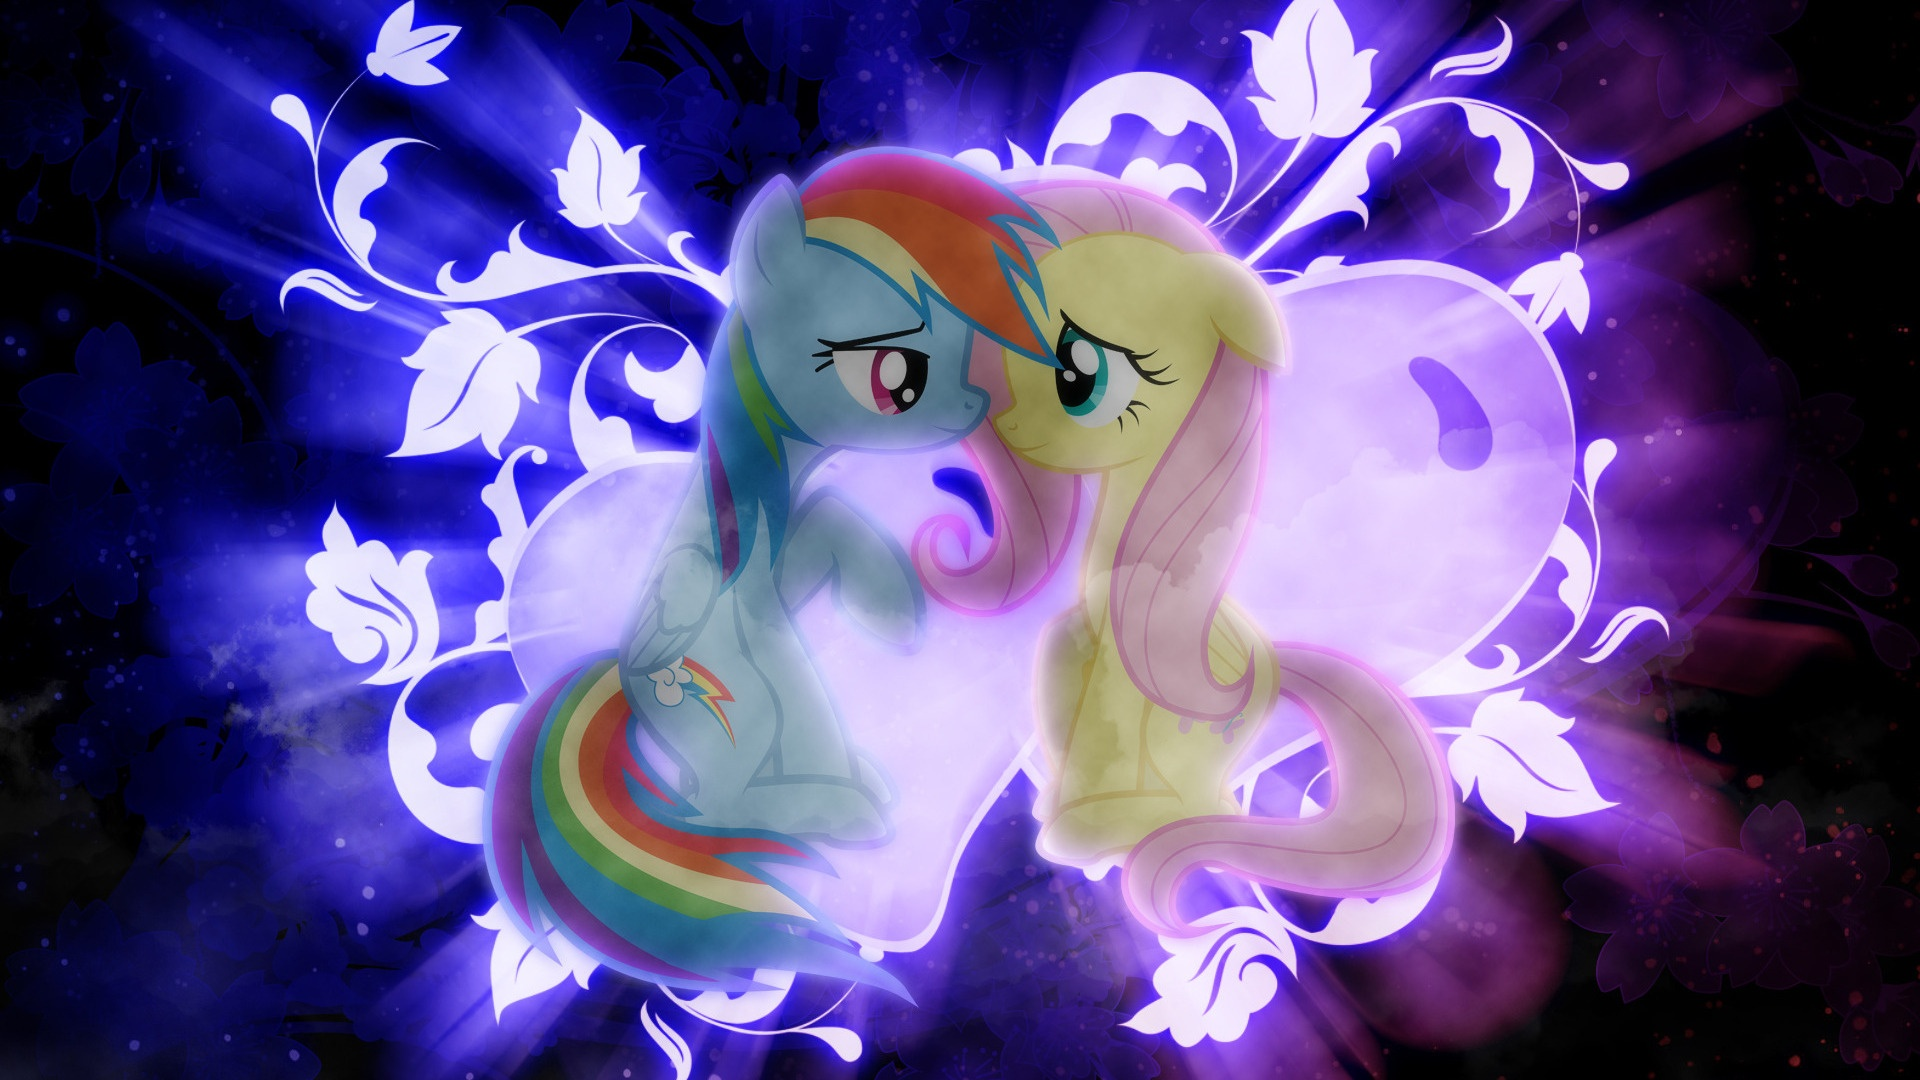 Free Download New My Little Pony Rainbow Dash Images